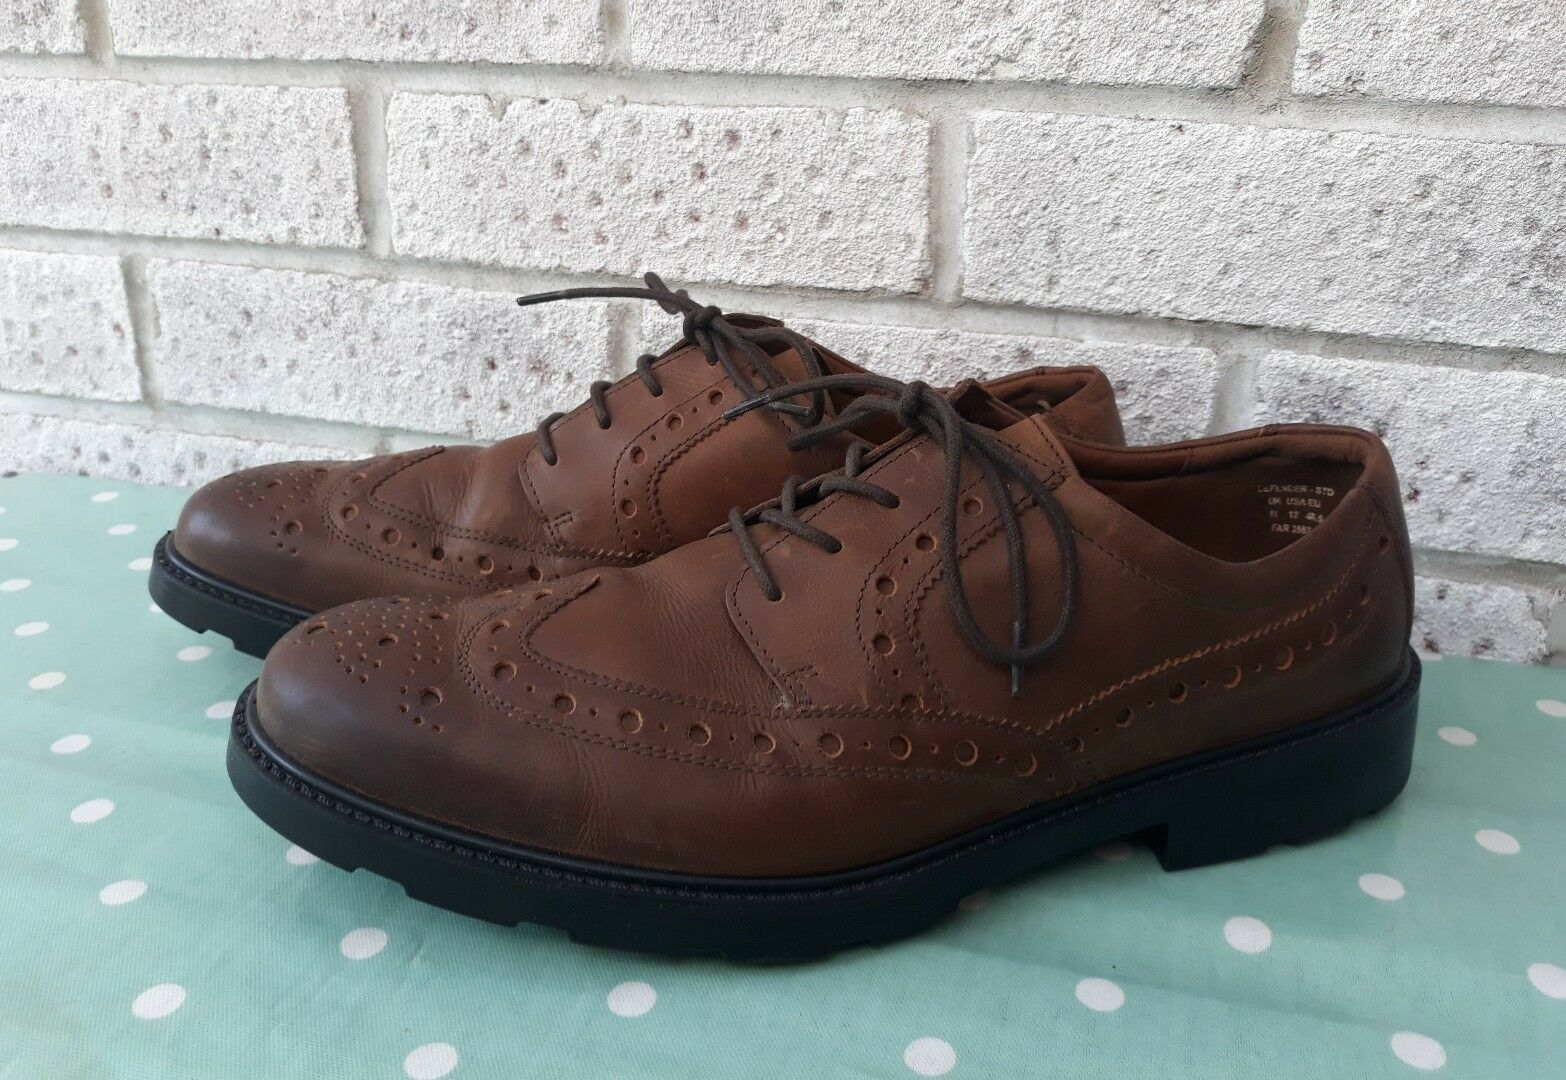 HOTTERS|FALCON BROGUES|TANNED LEATHER Schuhe|COMFORT CONCEPT|BRAND NEW NEW CONCEPT|BRAND a8b230